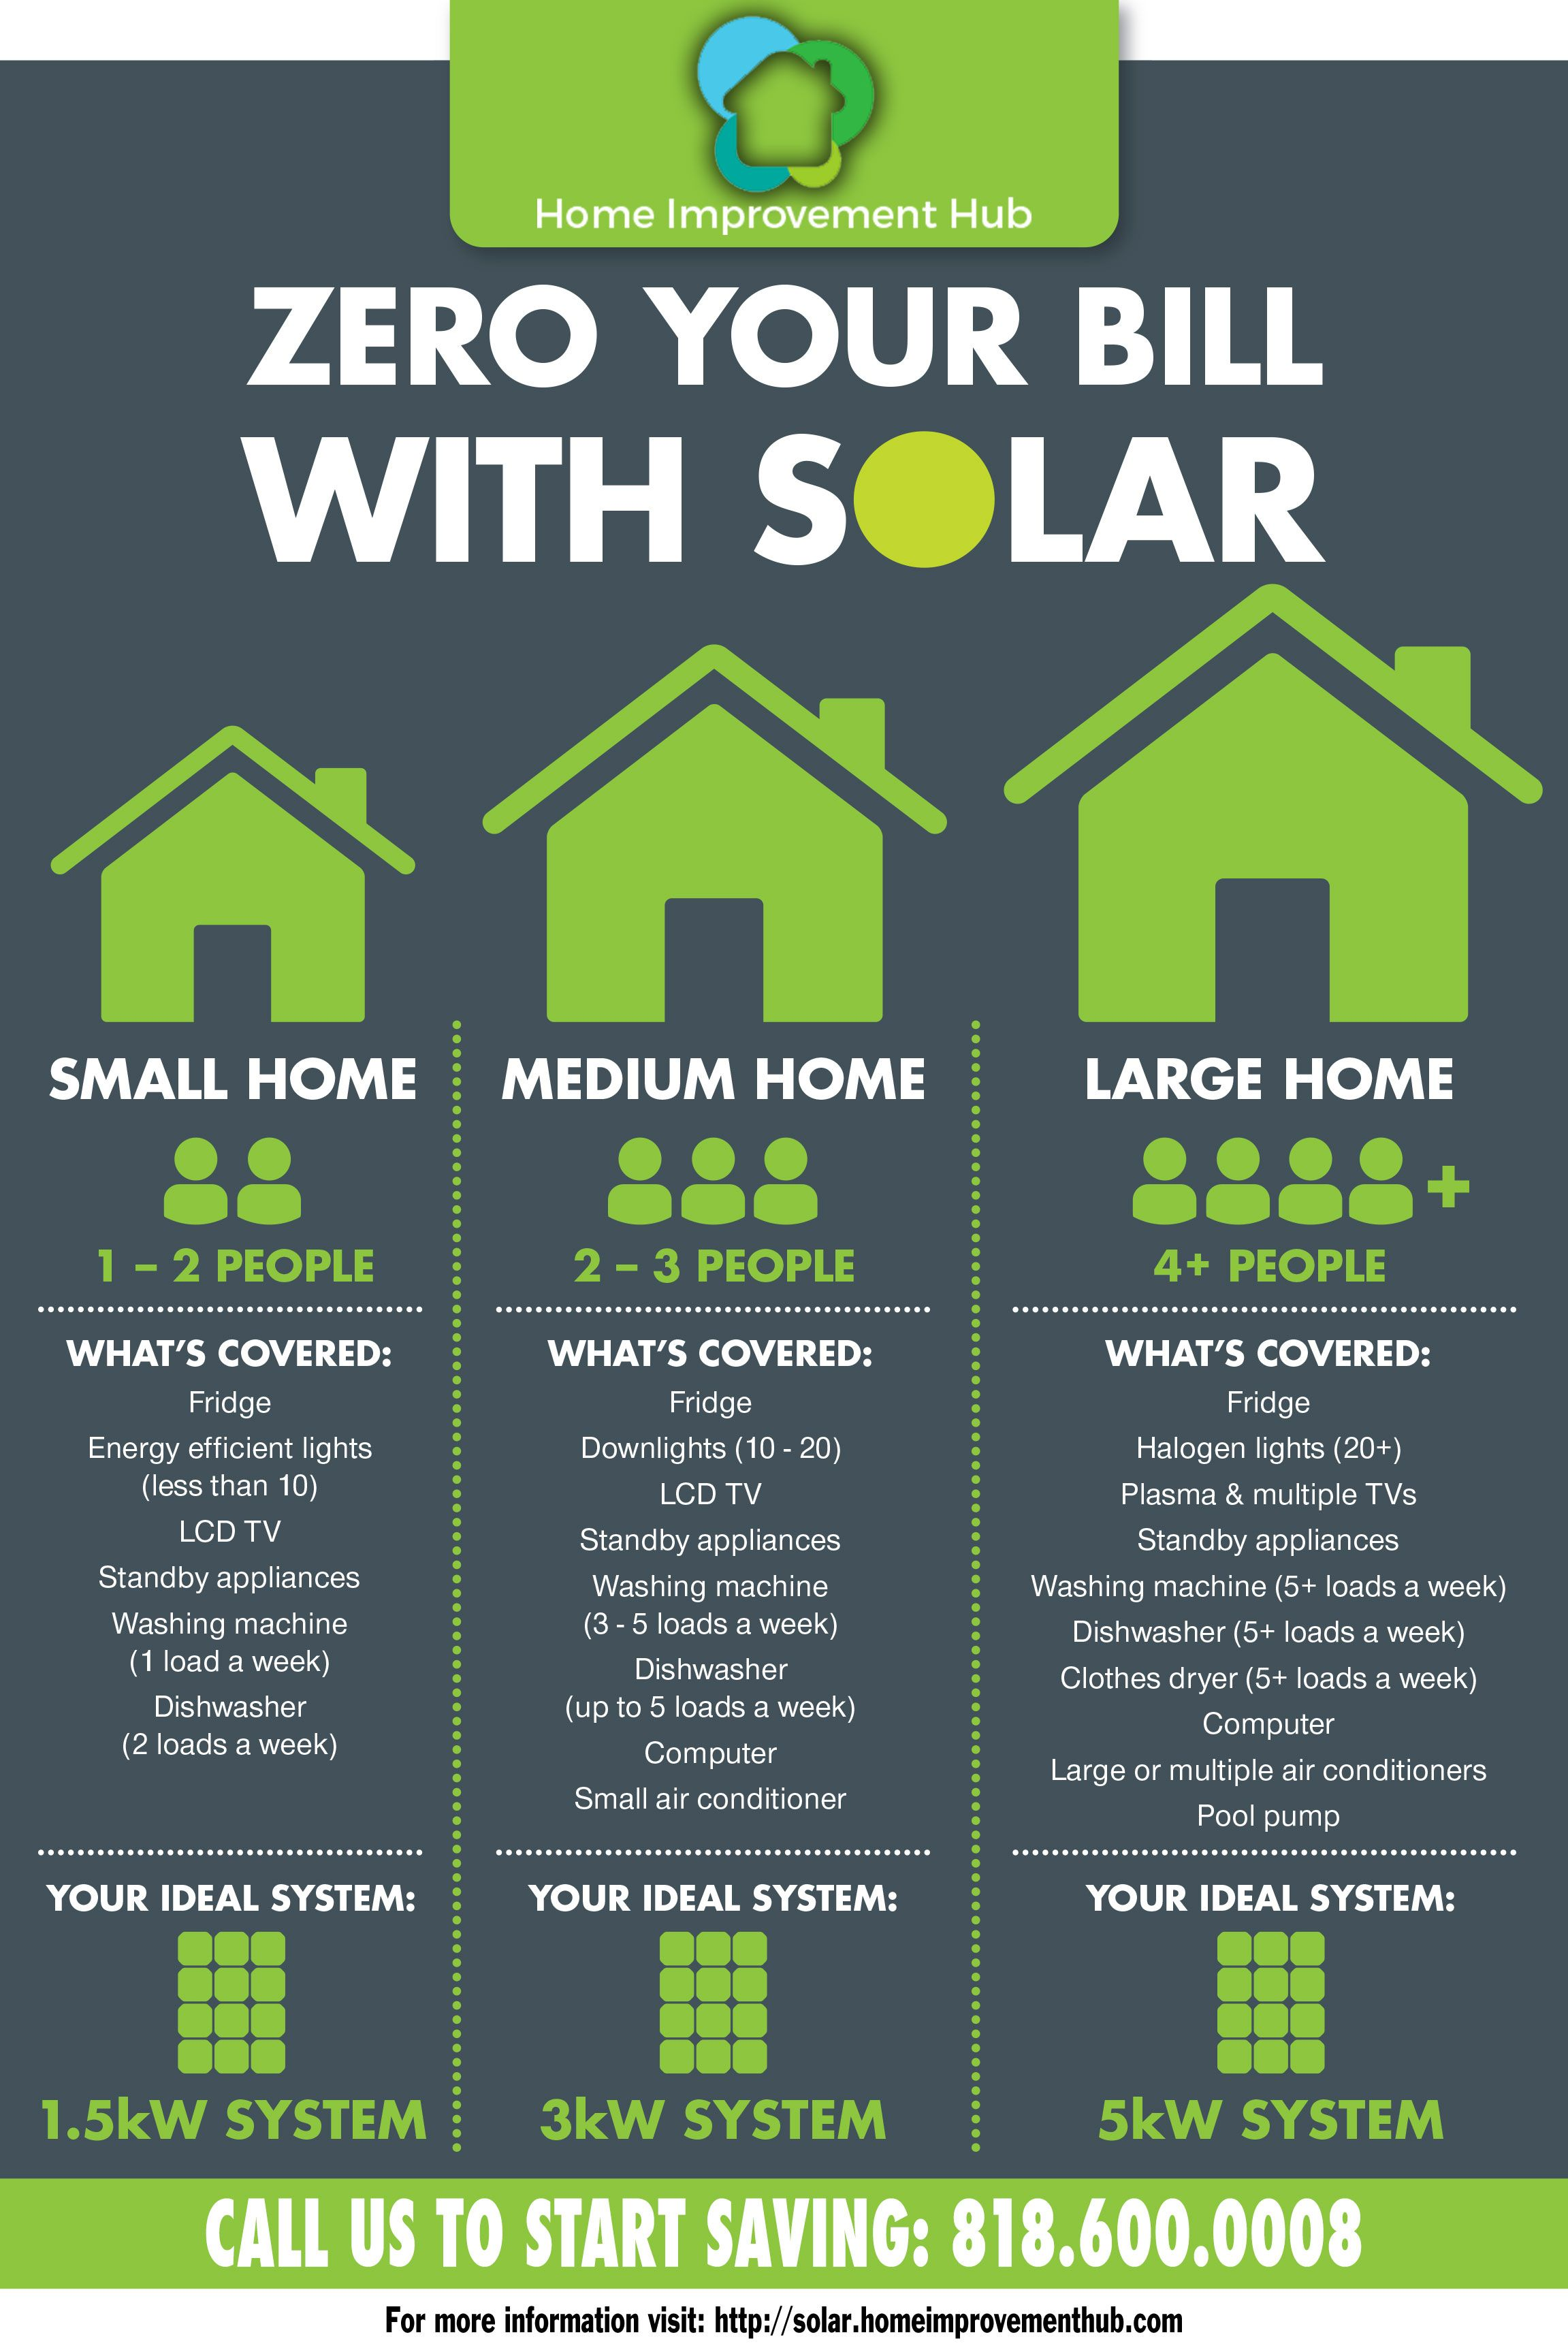 Take Advantage Of Easy Affordable Financing Options For New Solar Panels 0 Upfront Make No Payments Until November Solar House Solar Panels For Home Solar